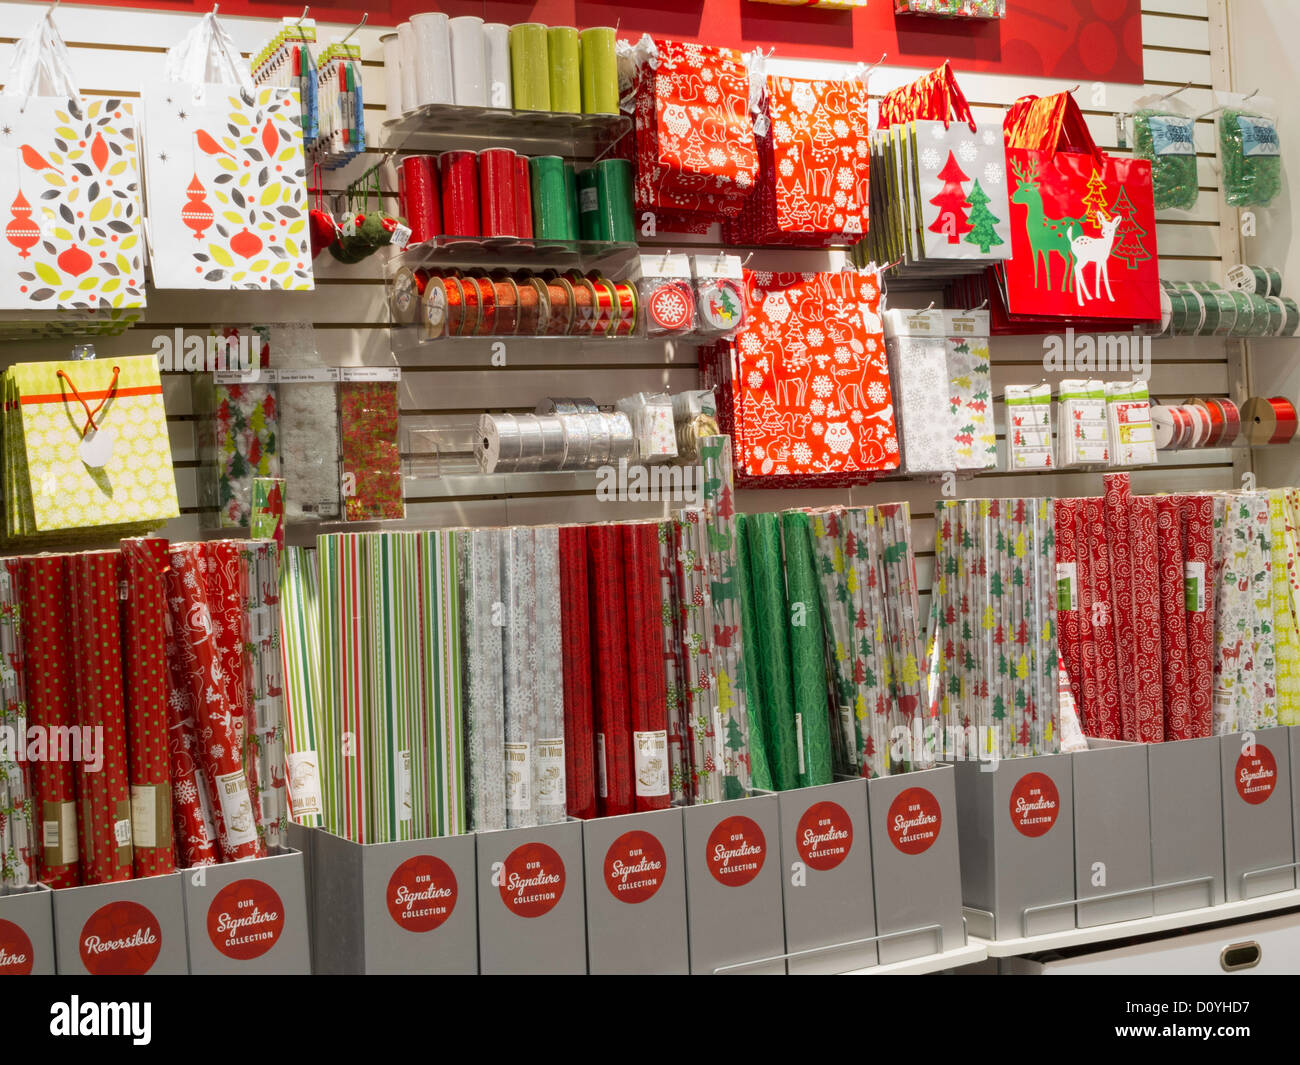 Get all the supplies you need at Paper Mart. Explore our vast selection of ribbons, packaging supplies, gift wrapping supplies, and party supplies!